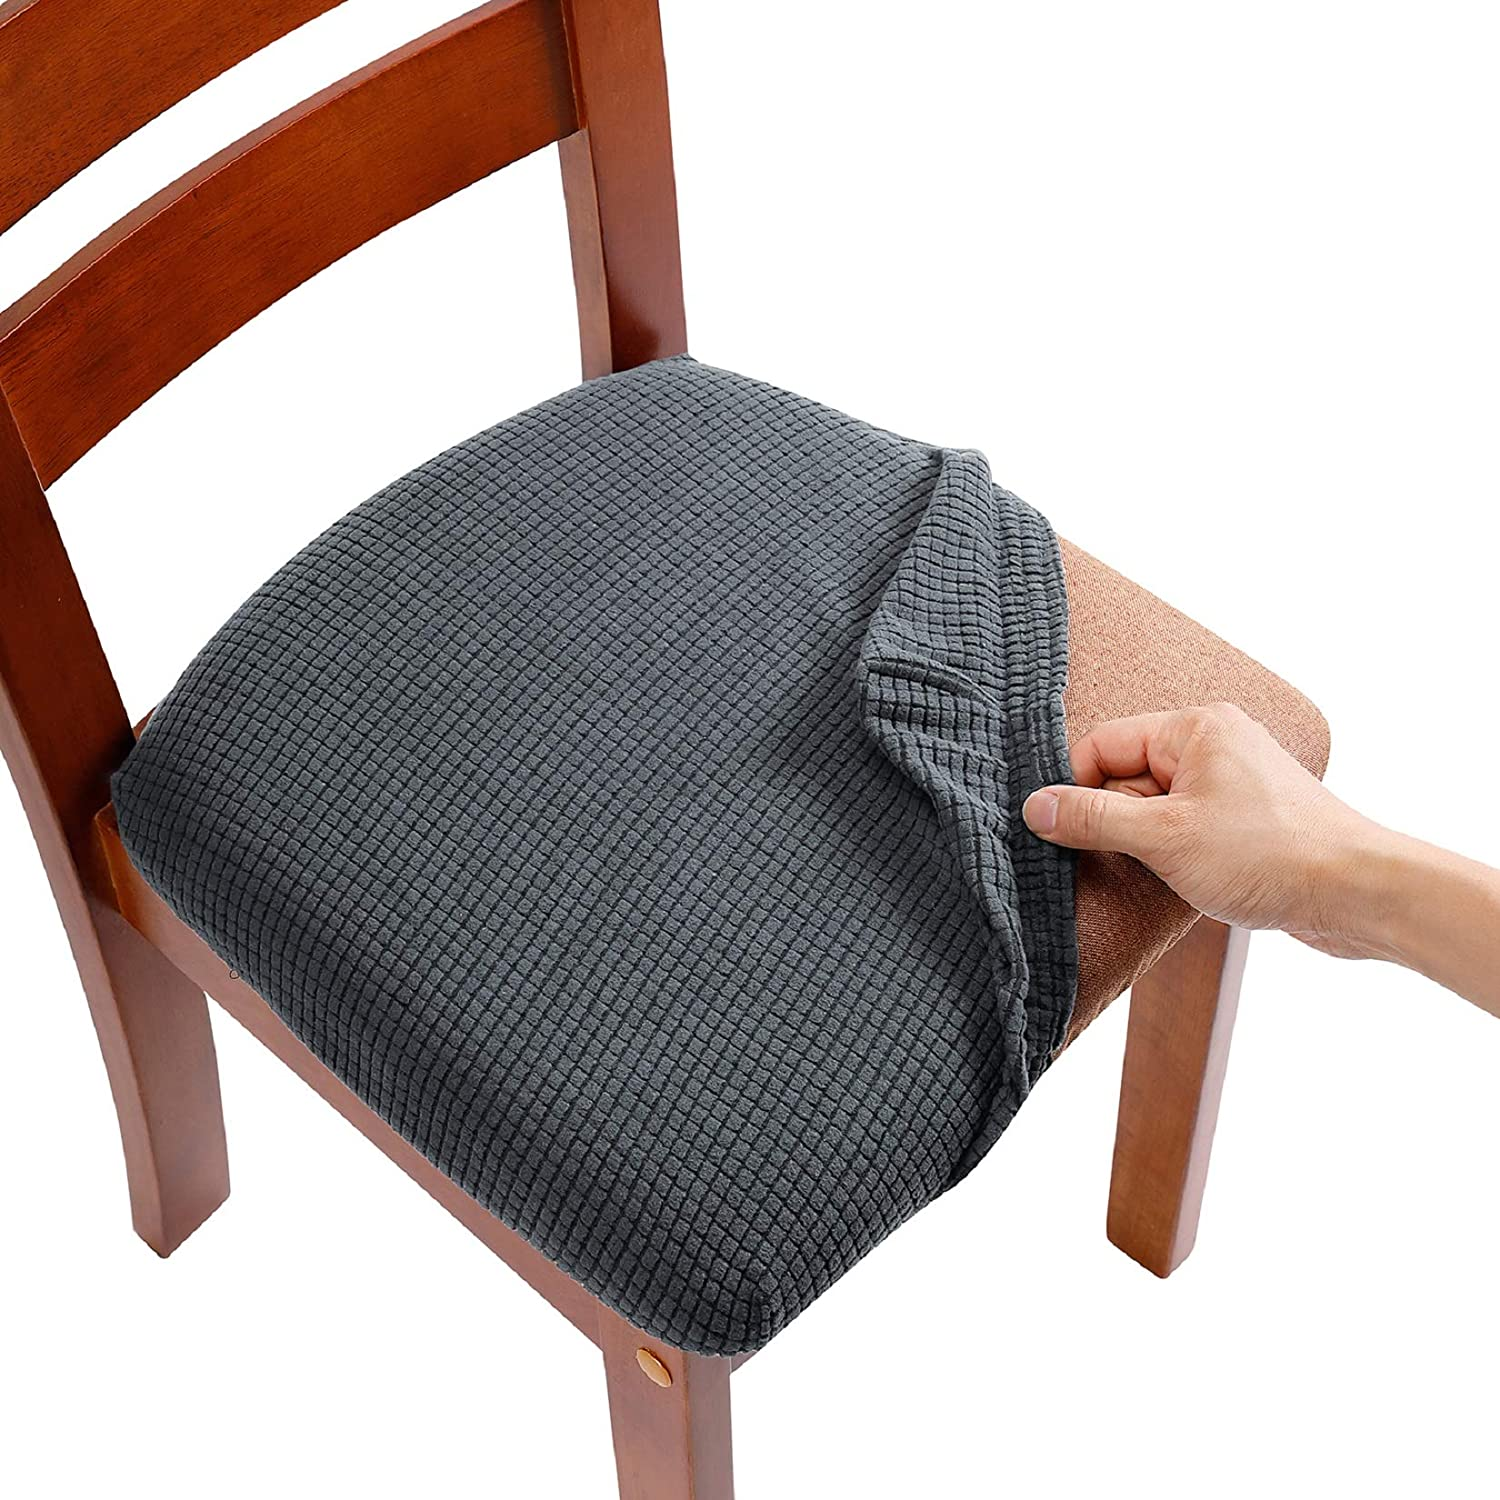 AlGaiety Dining Chair Covers, Chair Slipcovers for Dining Room, Stretch Jacquard Dining Chairs Covers Set of 6, Removable Washable Anti-Dust Chair Seat Covers, Seat Covers for Chairs, Grey